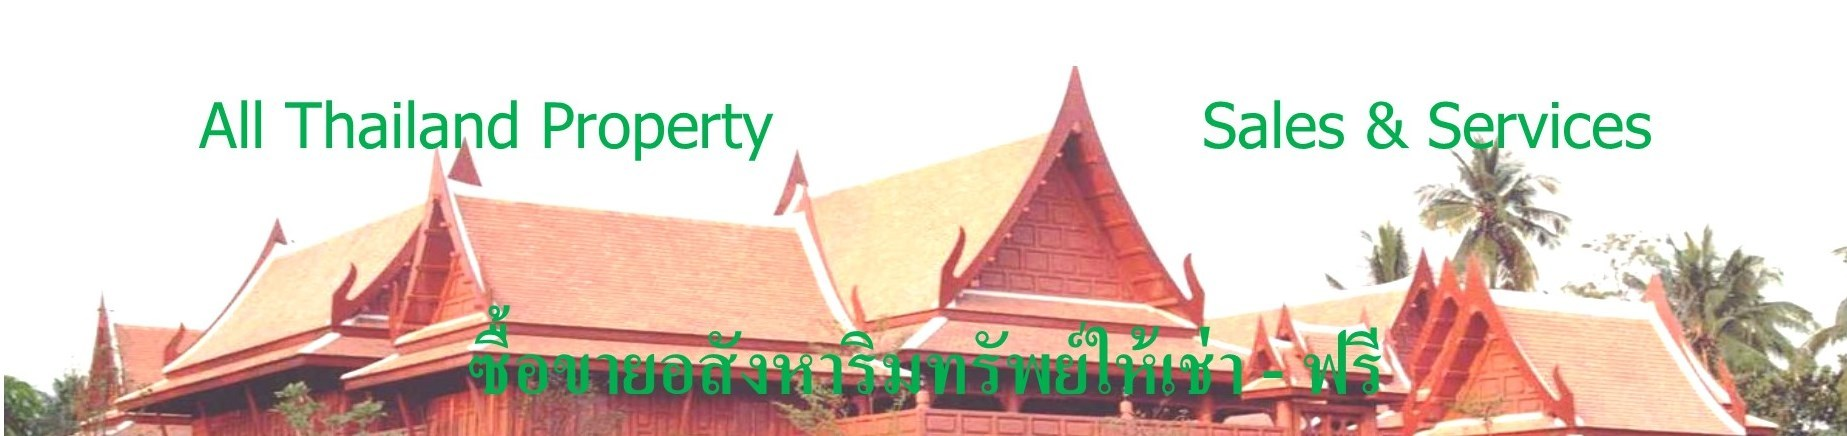 All Thailand Property